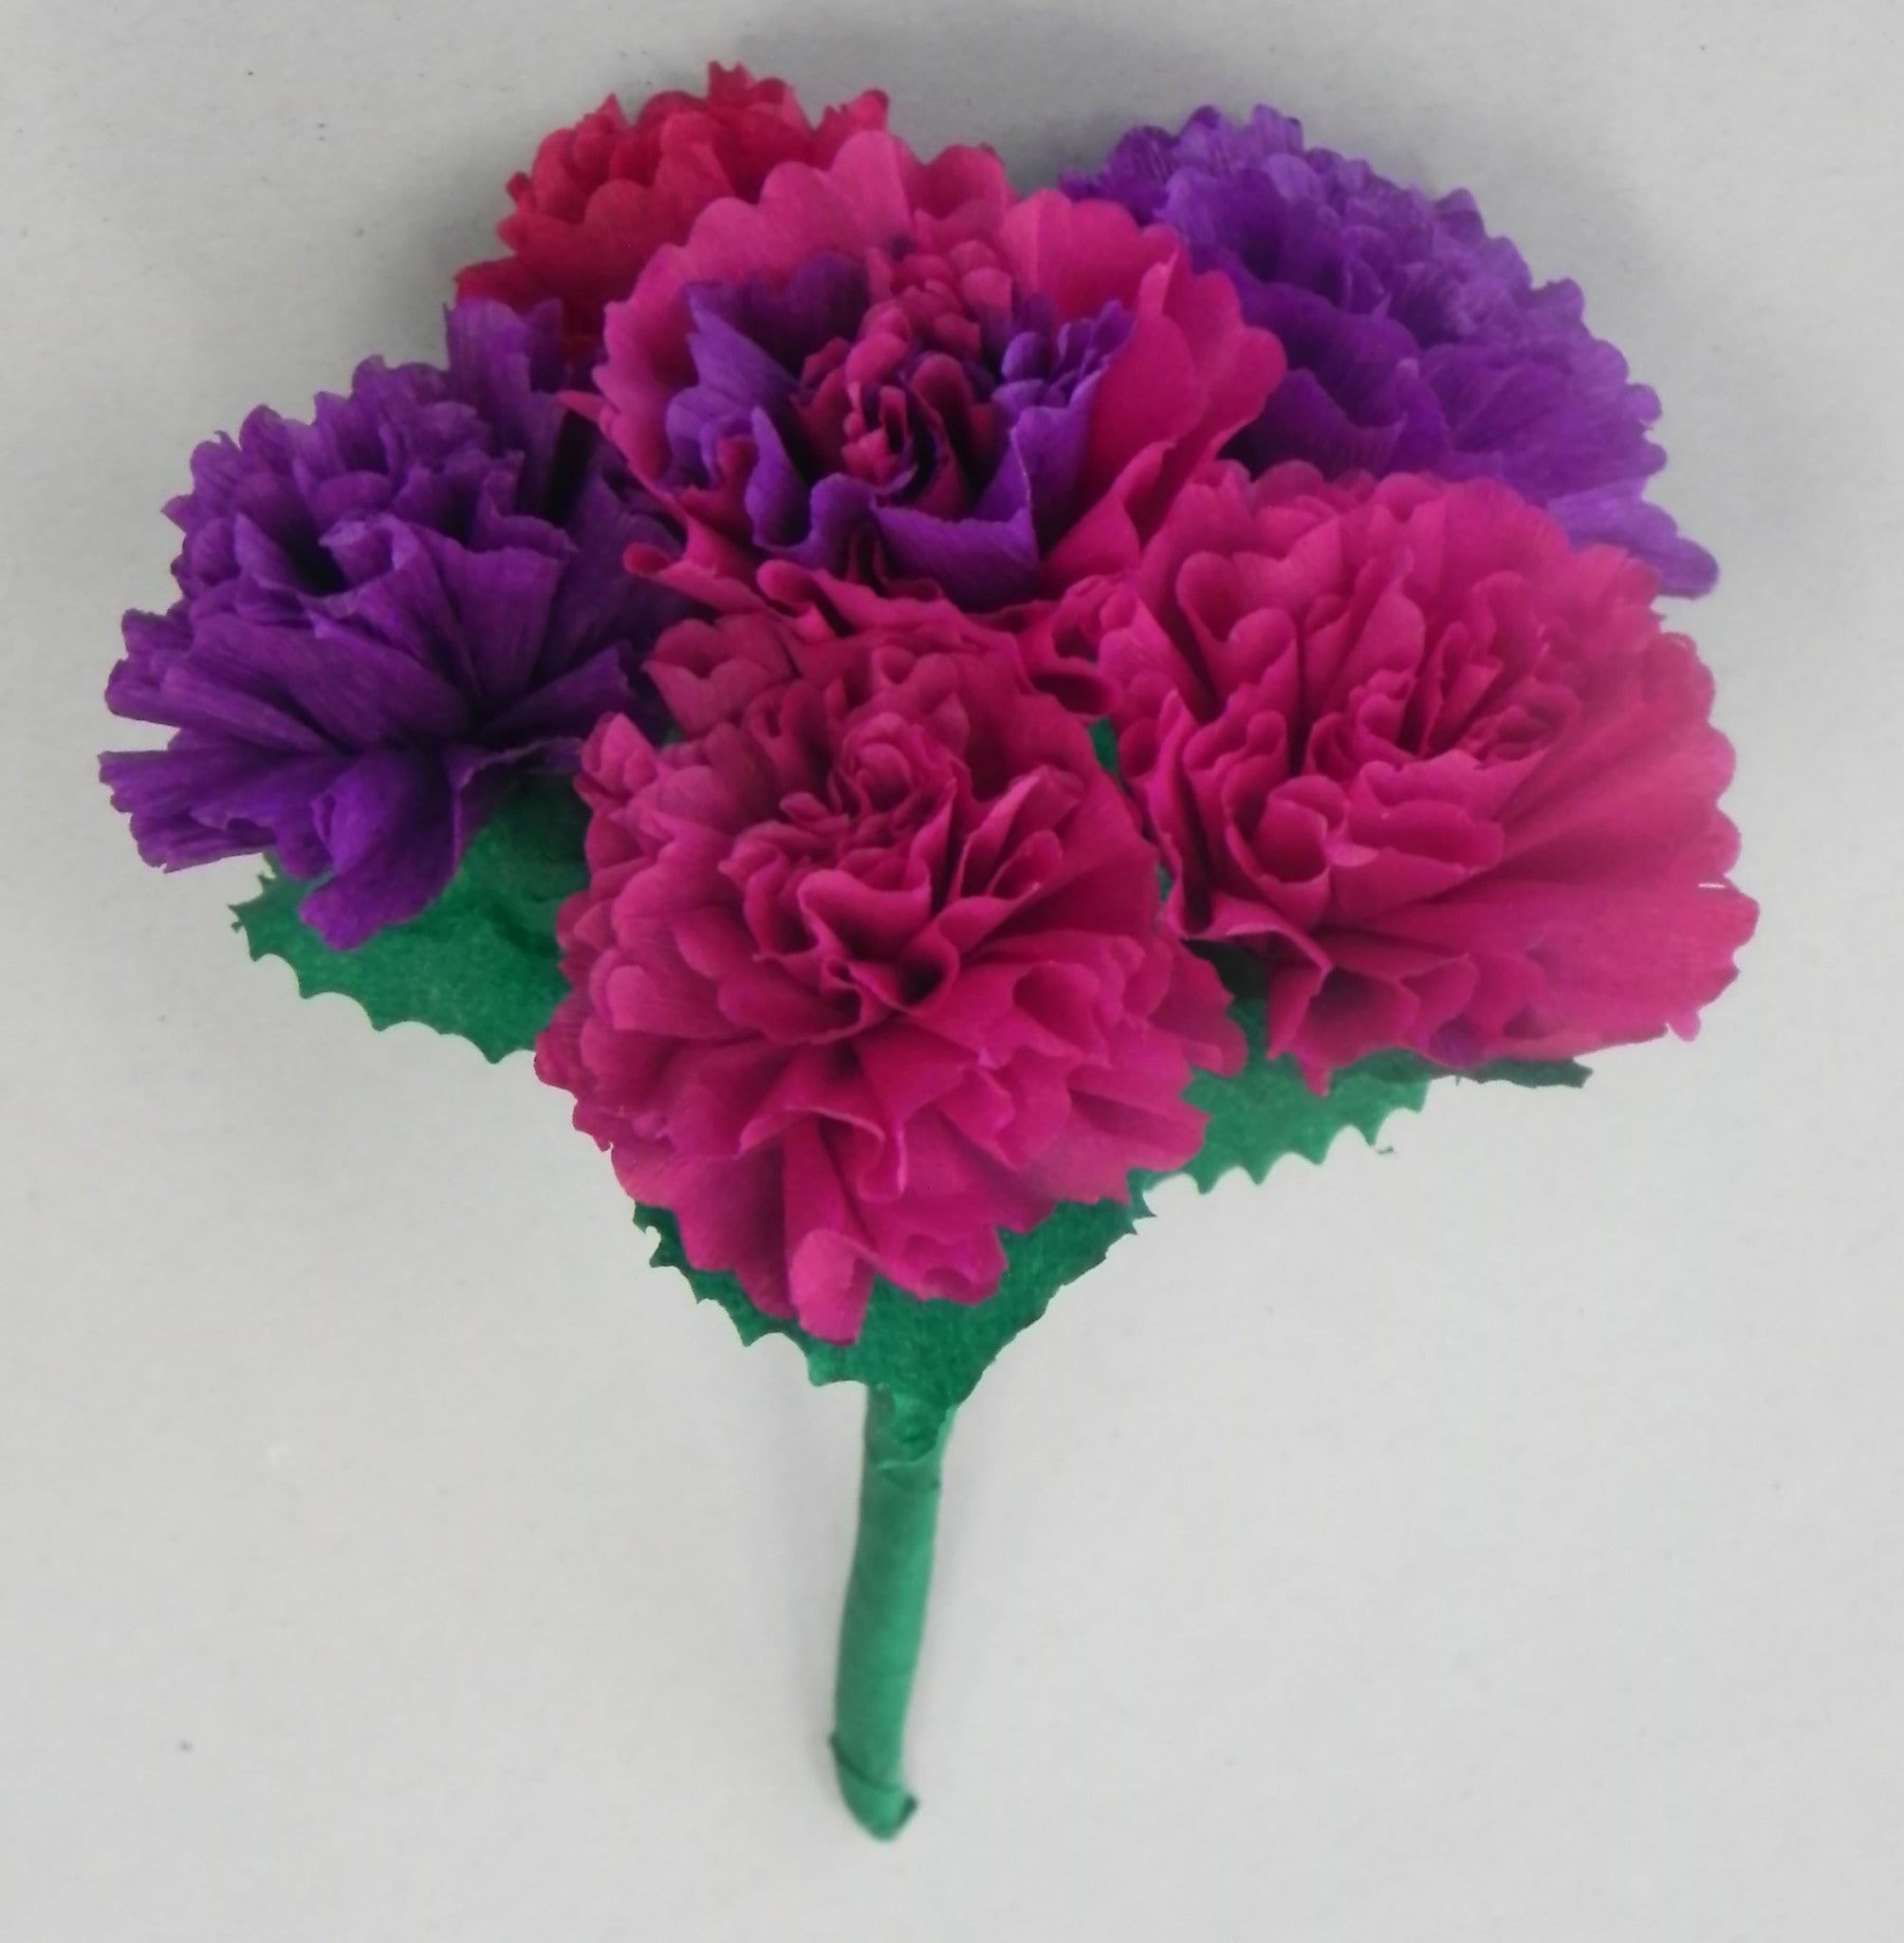 Free shipping mexican crepe paper flowers bouquet of 6 by julia free shipping mexican crepe paper flowers bouquet of 6 by julia purple paper flowers by julia mightylinksfo